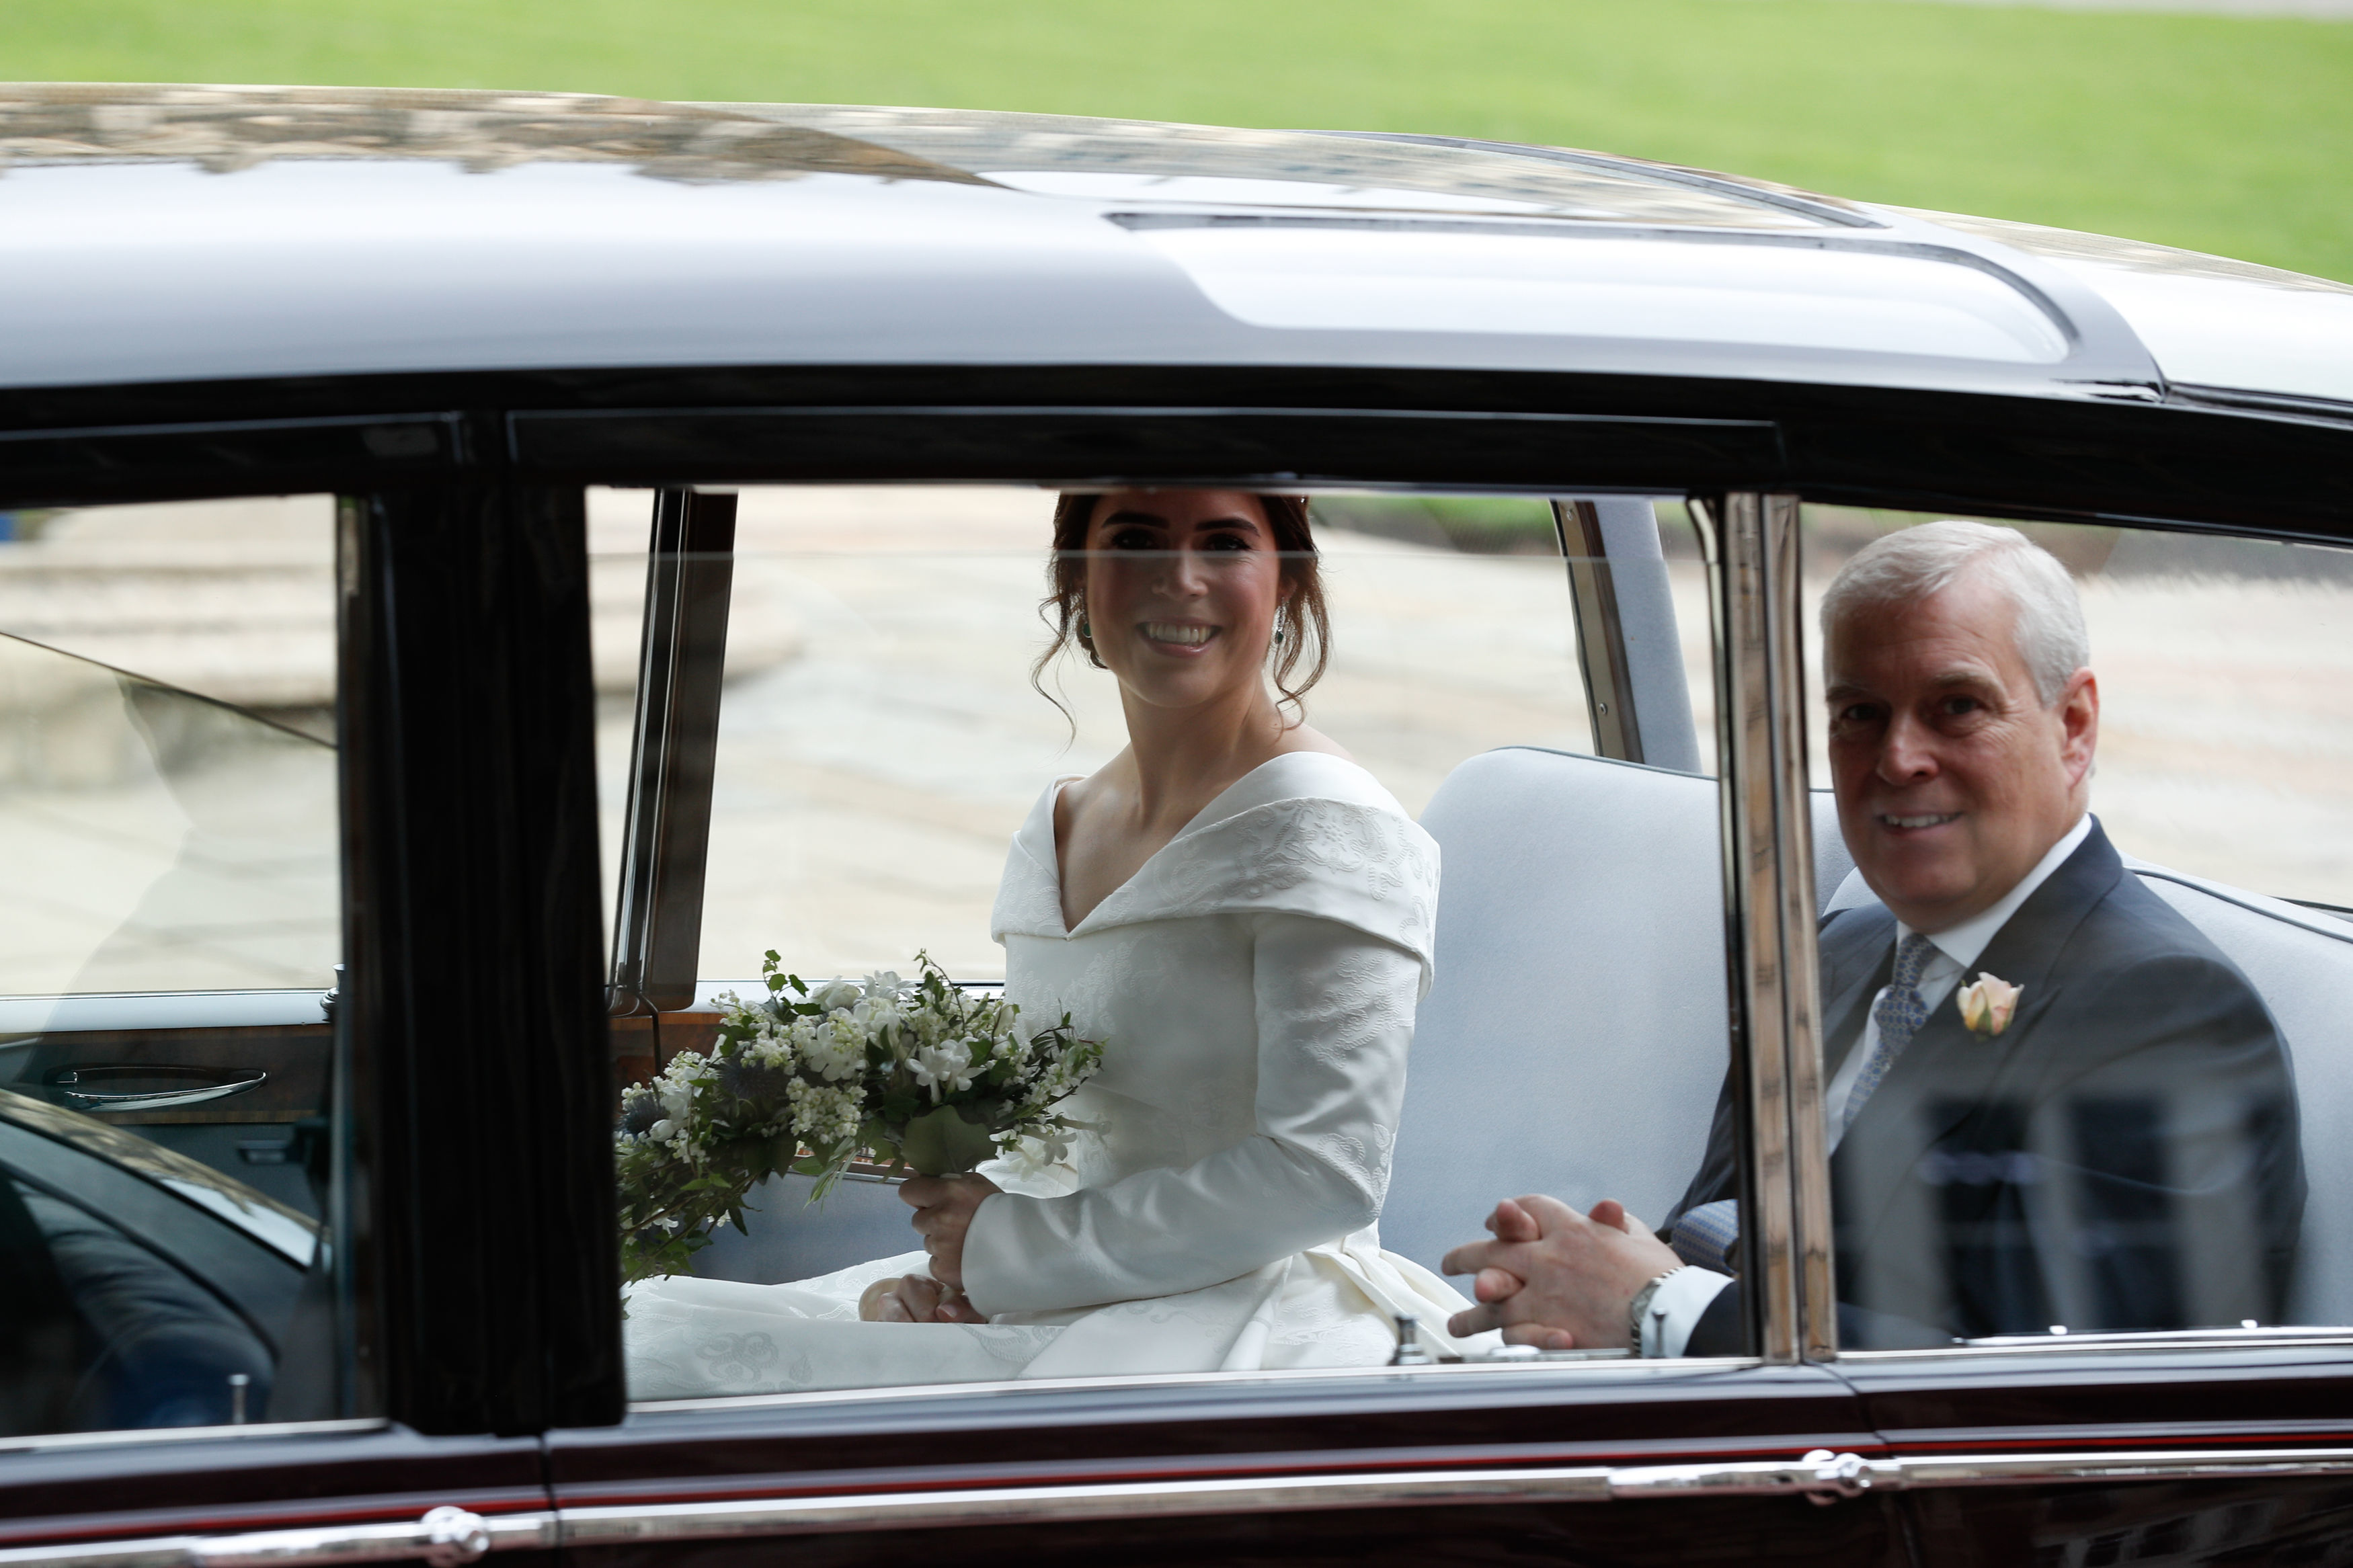 WINDSOR, ENGLAND - OCTOBER 12: The bride Princess Eugenie of York arrives with her father Prince Andrew,...